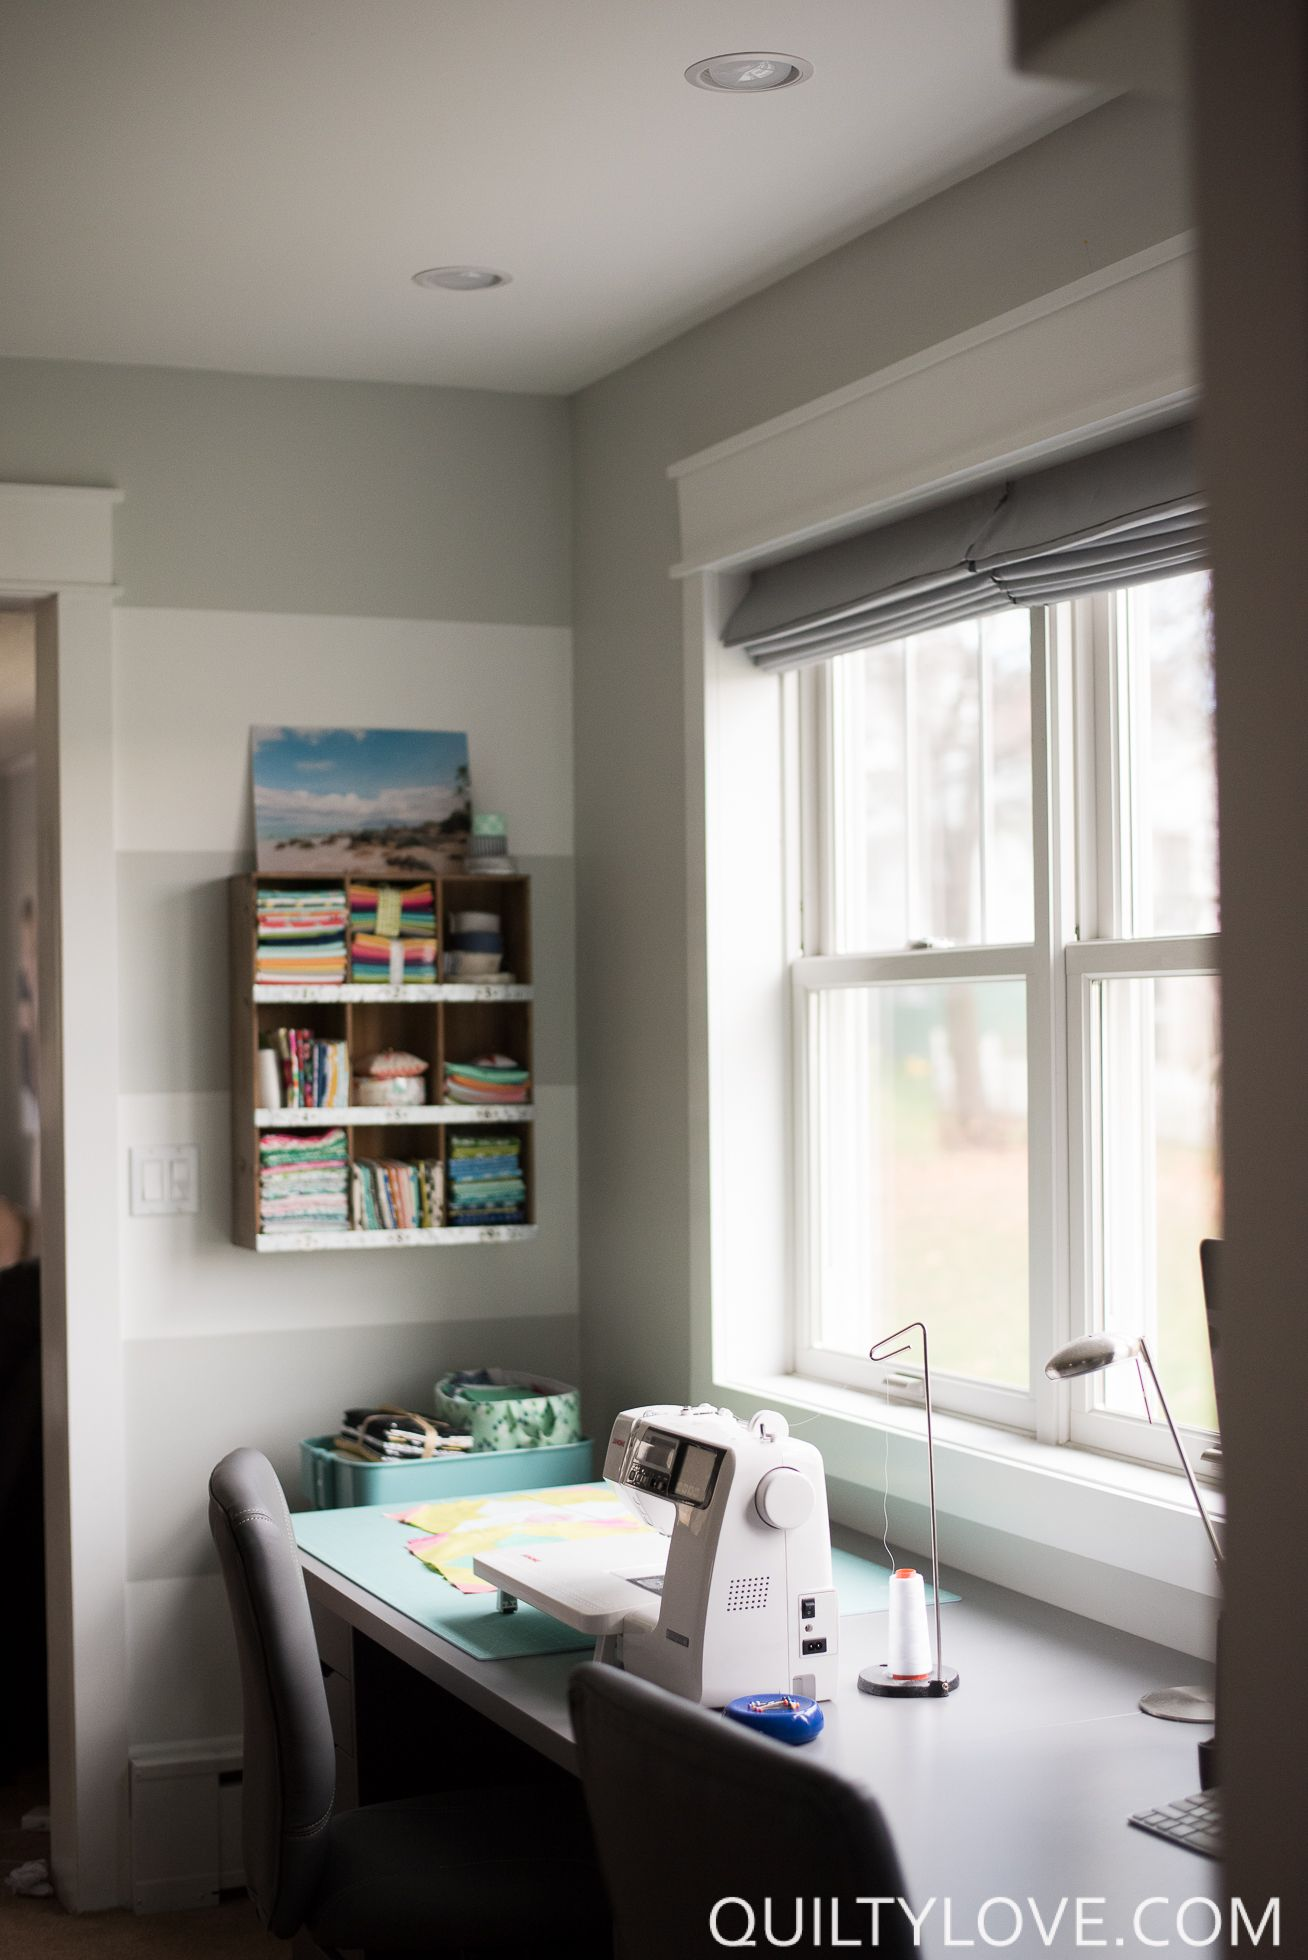 Quilting (and working) in a small space | Small space storage, Small ...